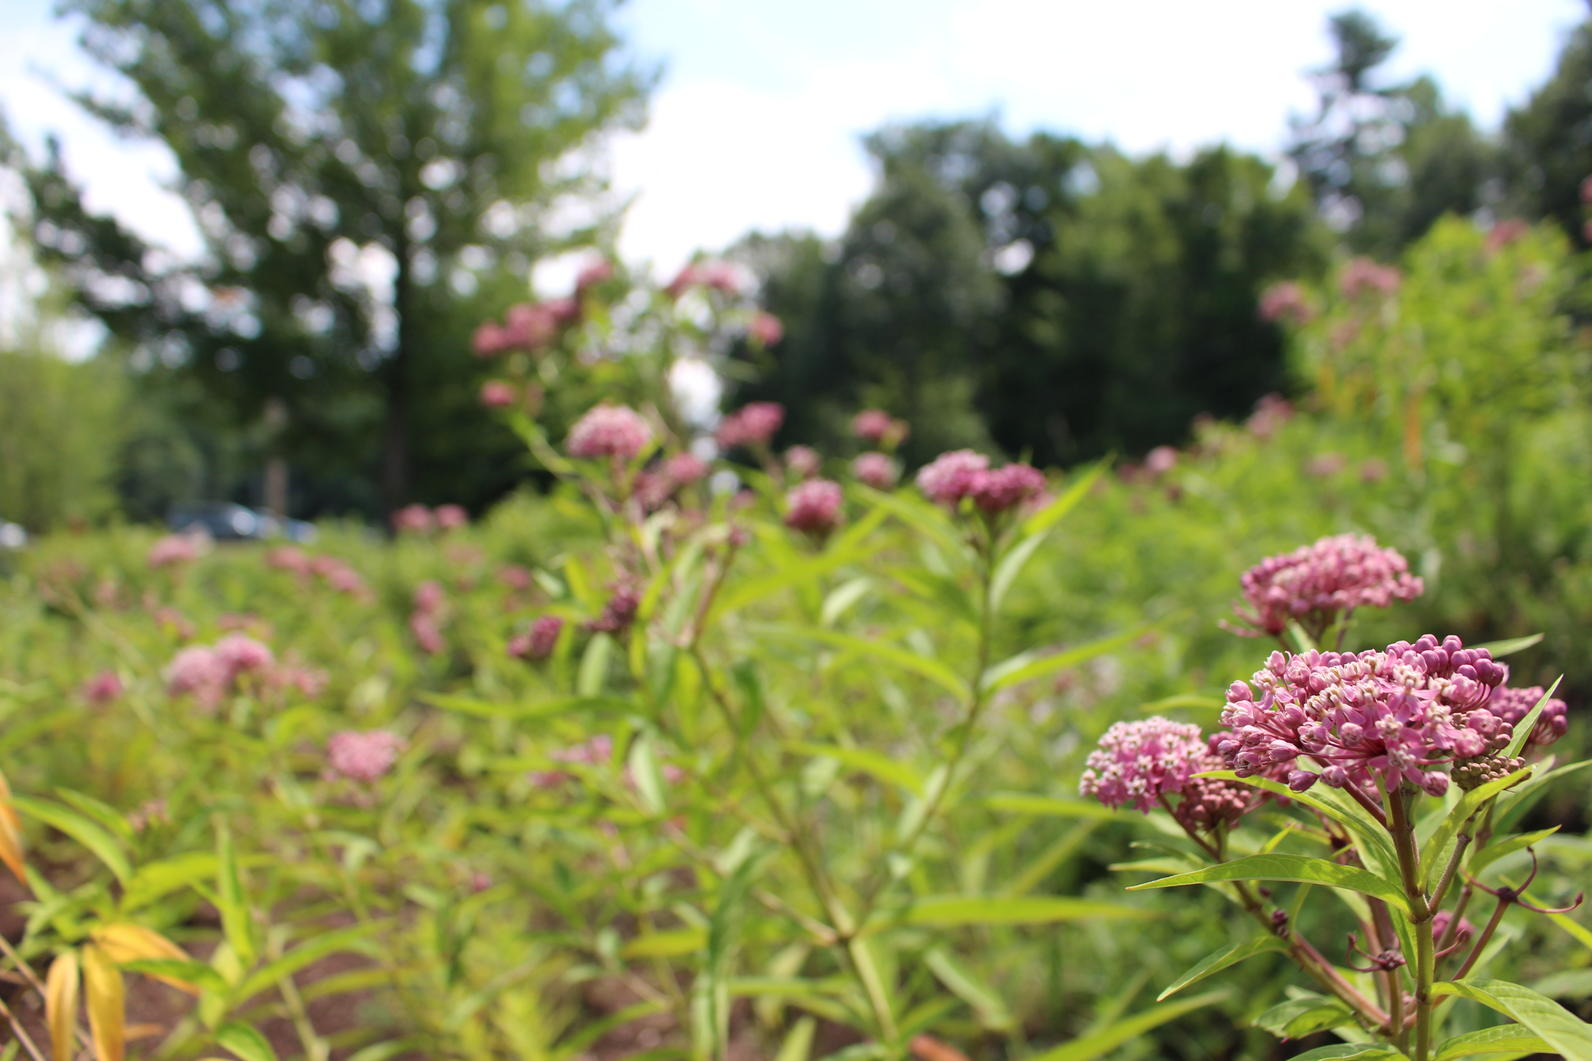 Plants for Birds: Burlington - Leddy Park